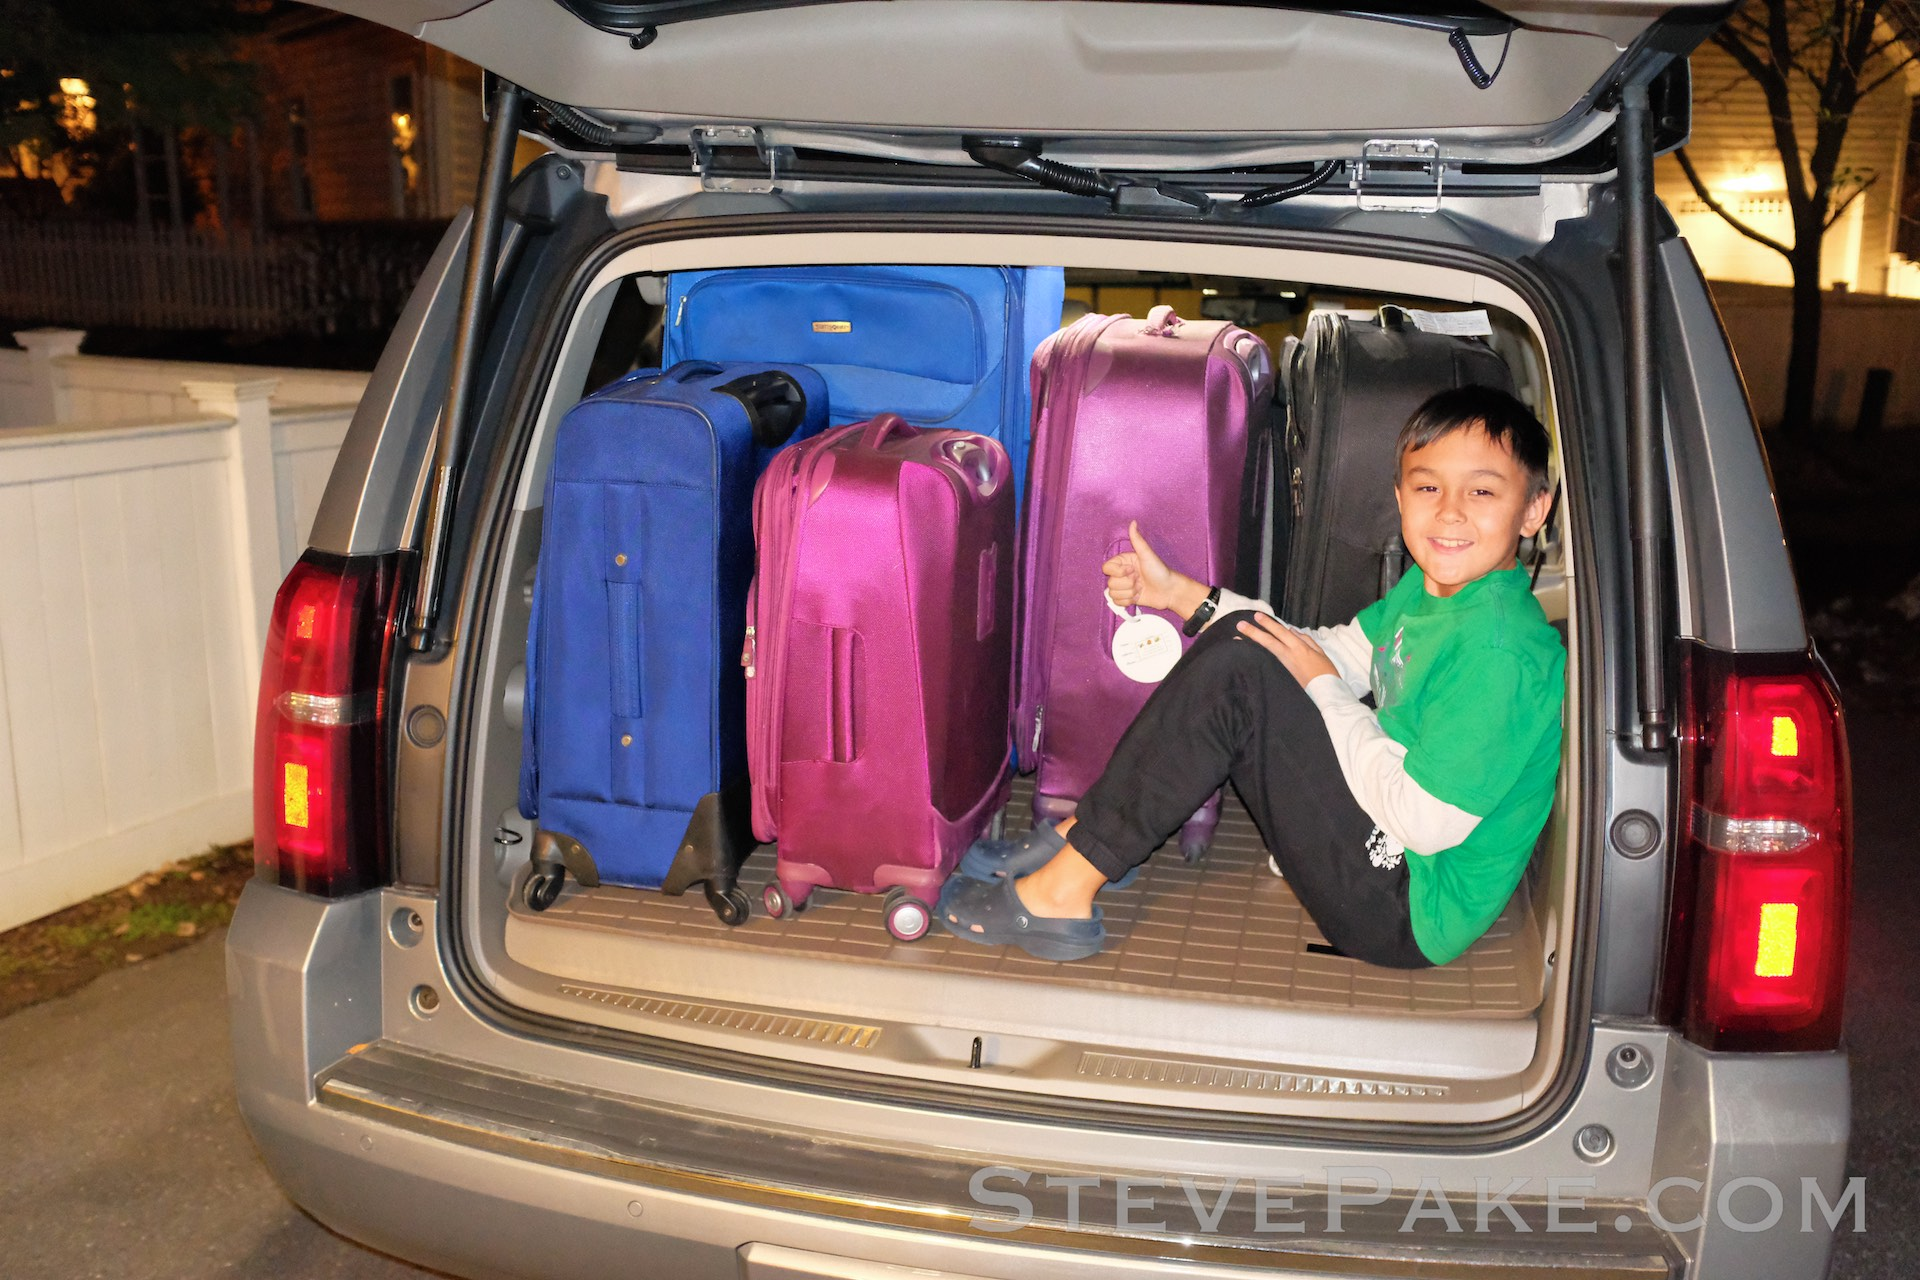 There's so much more cargo space in the Suburban that I could squeeze my son back there and STILL fit all of the extras. There's just no comparison. The Suburban has far superior cargo space despite the similar specs.